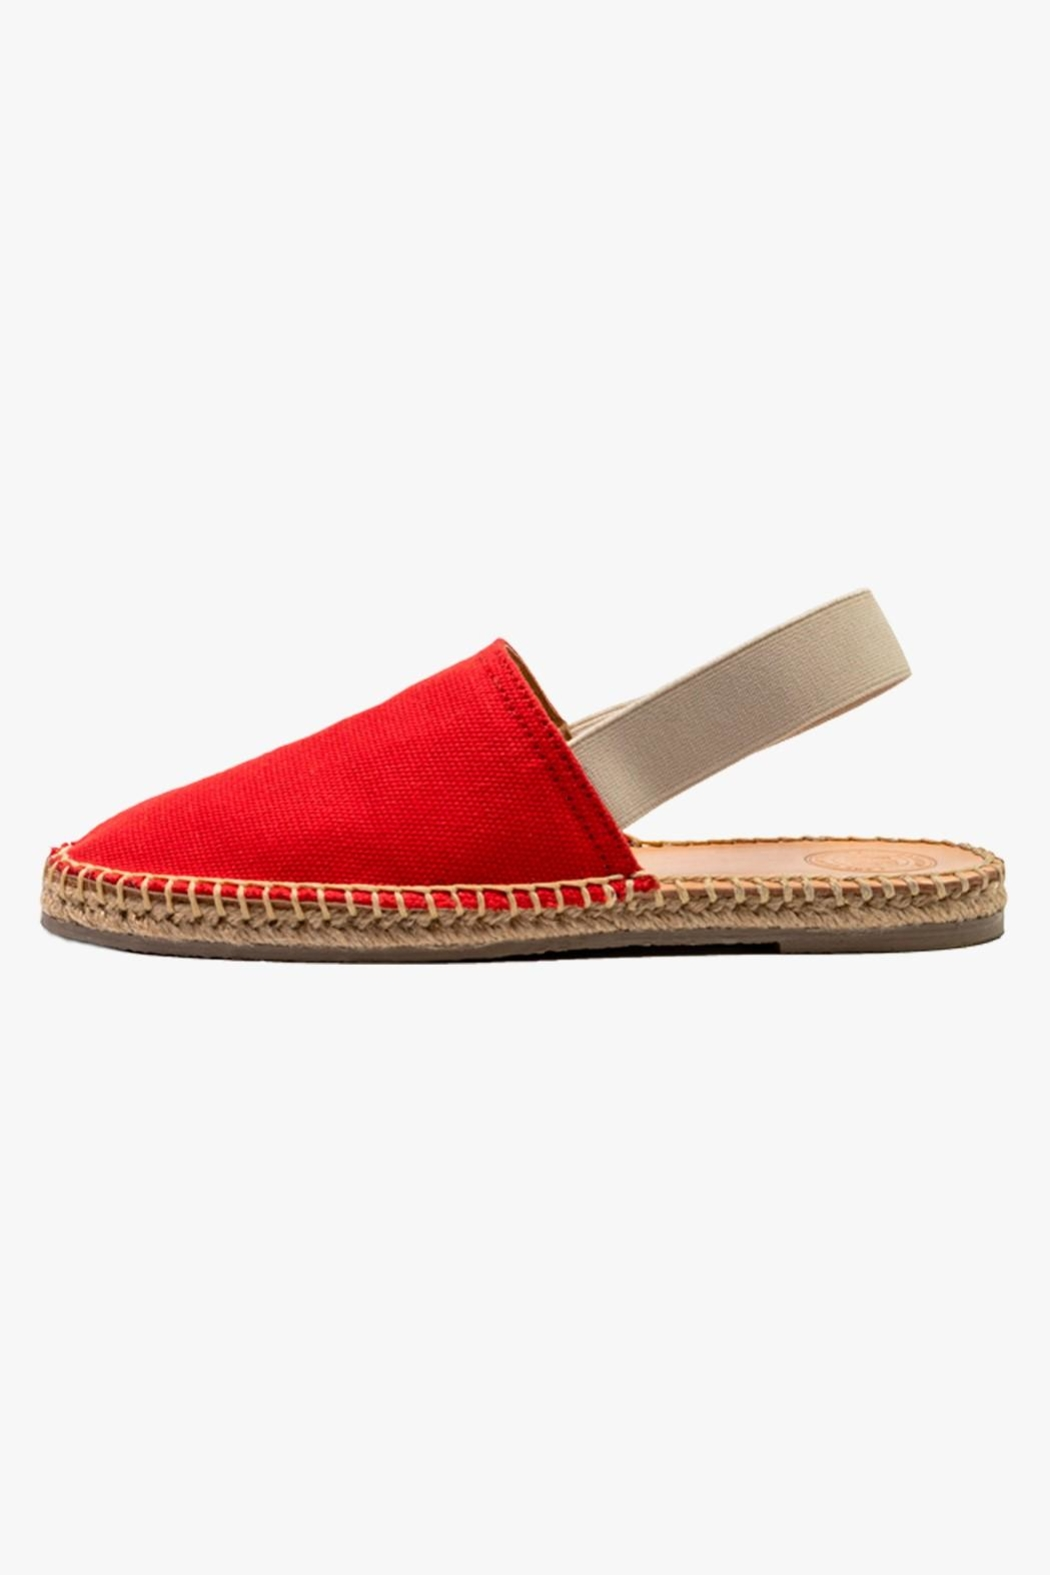 Morkas Shoes Red Textile Mules - Main Image